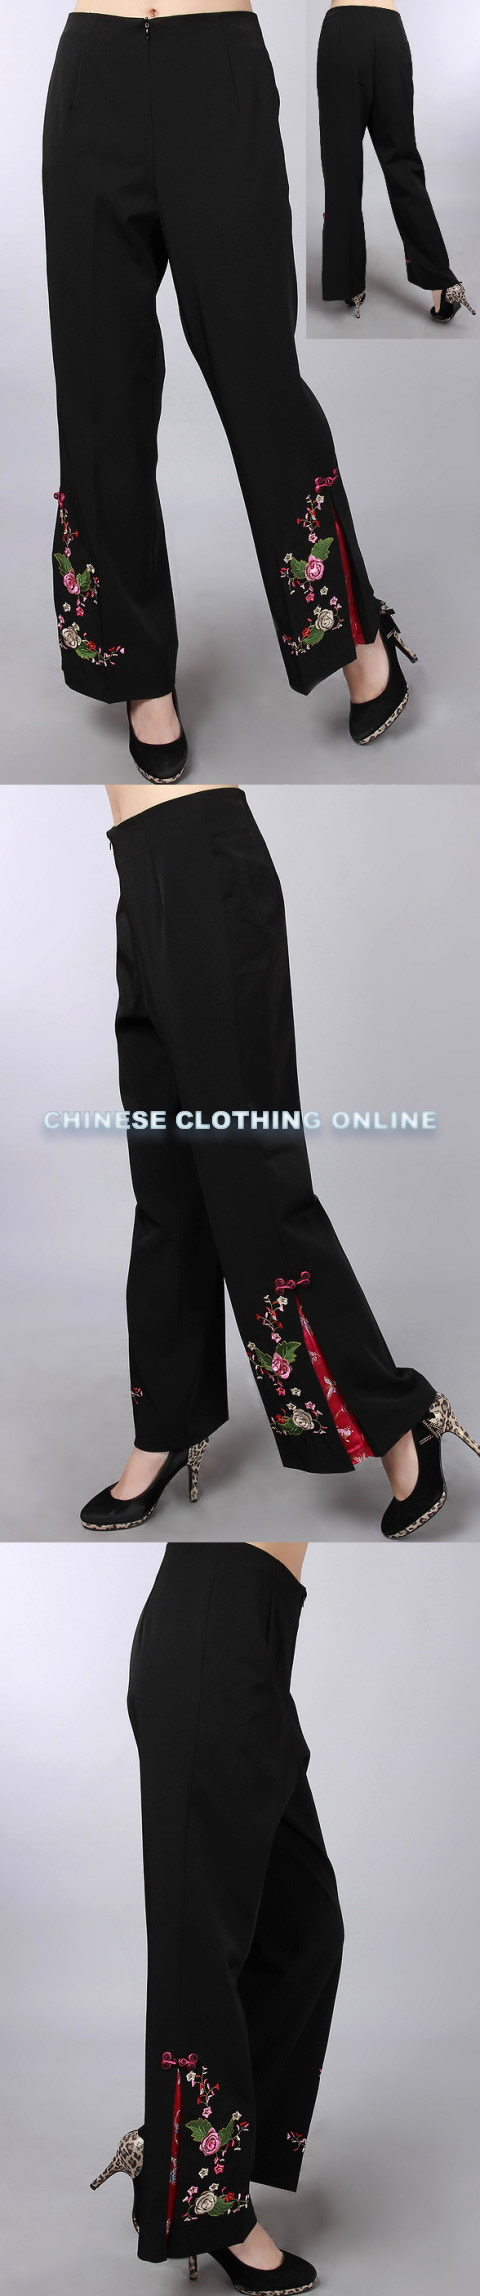 Mandarin Pants w/ Floral Embroidery (RM)